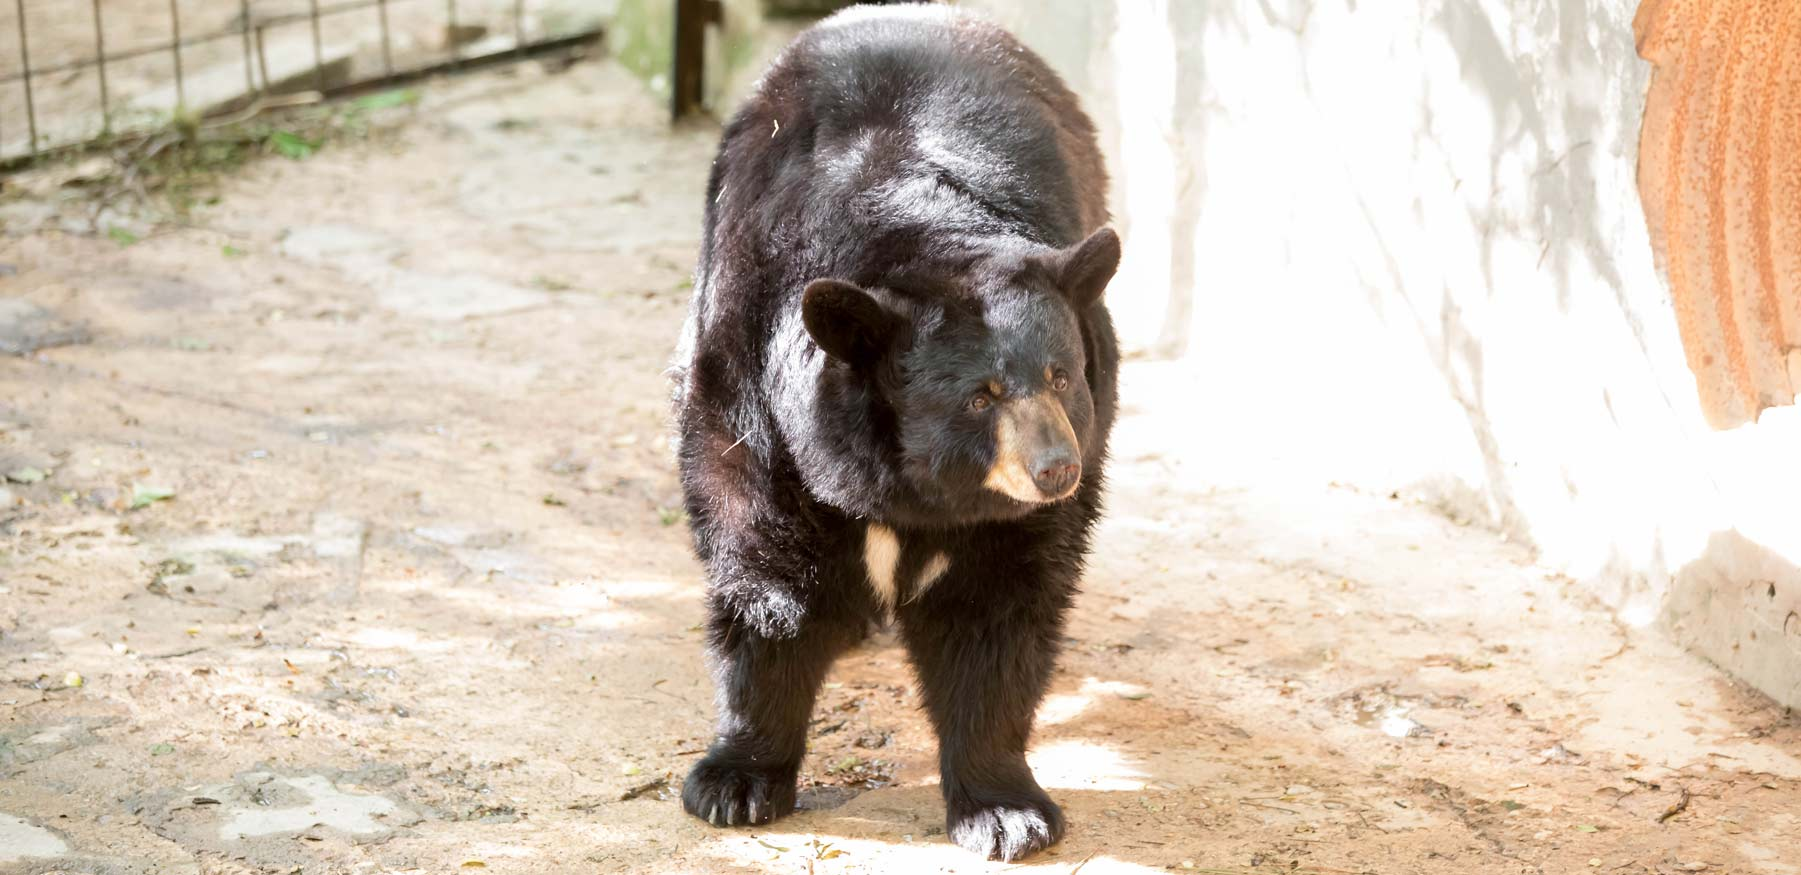 YRWS black bear in previous enclosure